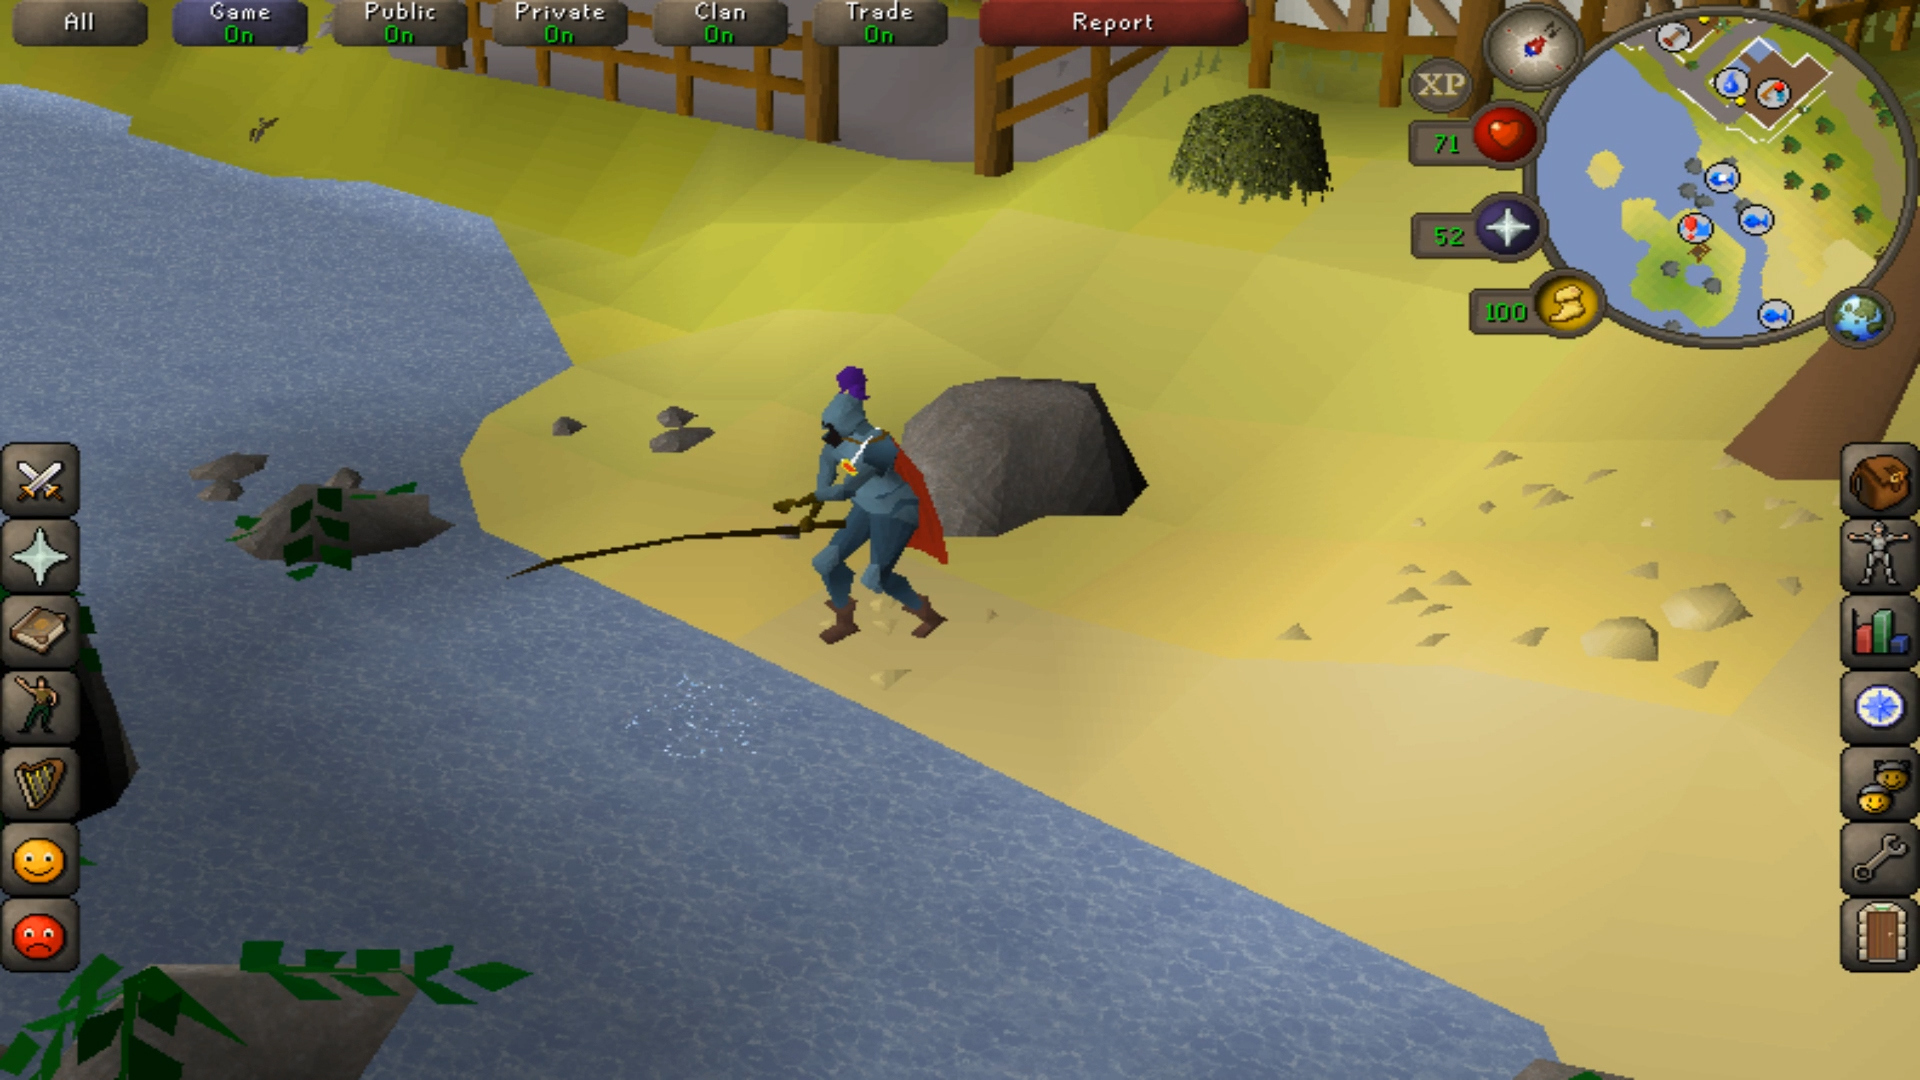 5 Top Old School RuneScape Game Guide: Some Easy Tips and Tricks to